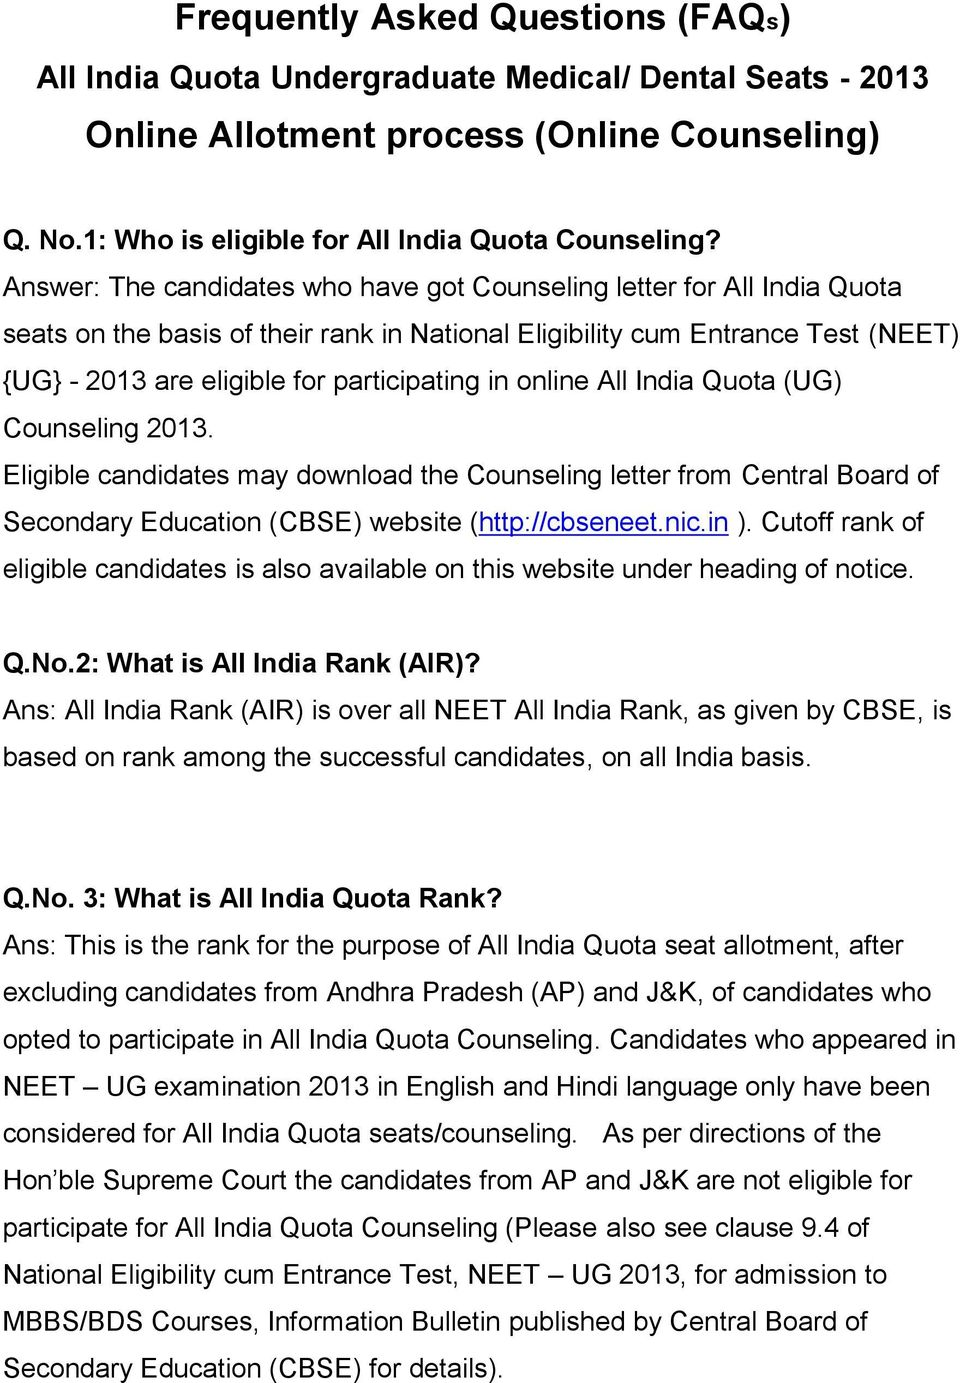 in online All India Quota (UG) Counseling 2013. Eligible candidates may download the Counseling letter from Central Board of Secondary Education (CBSE) website (http://cbseneet.nic.in ).